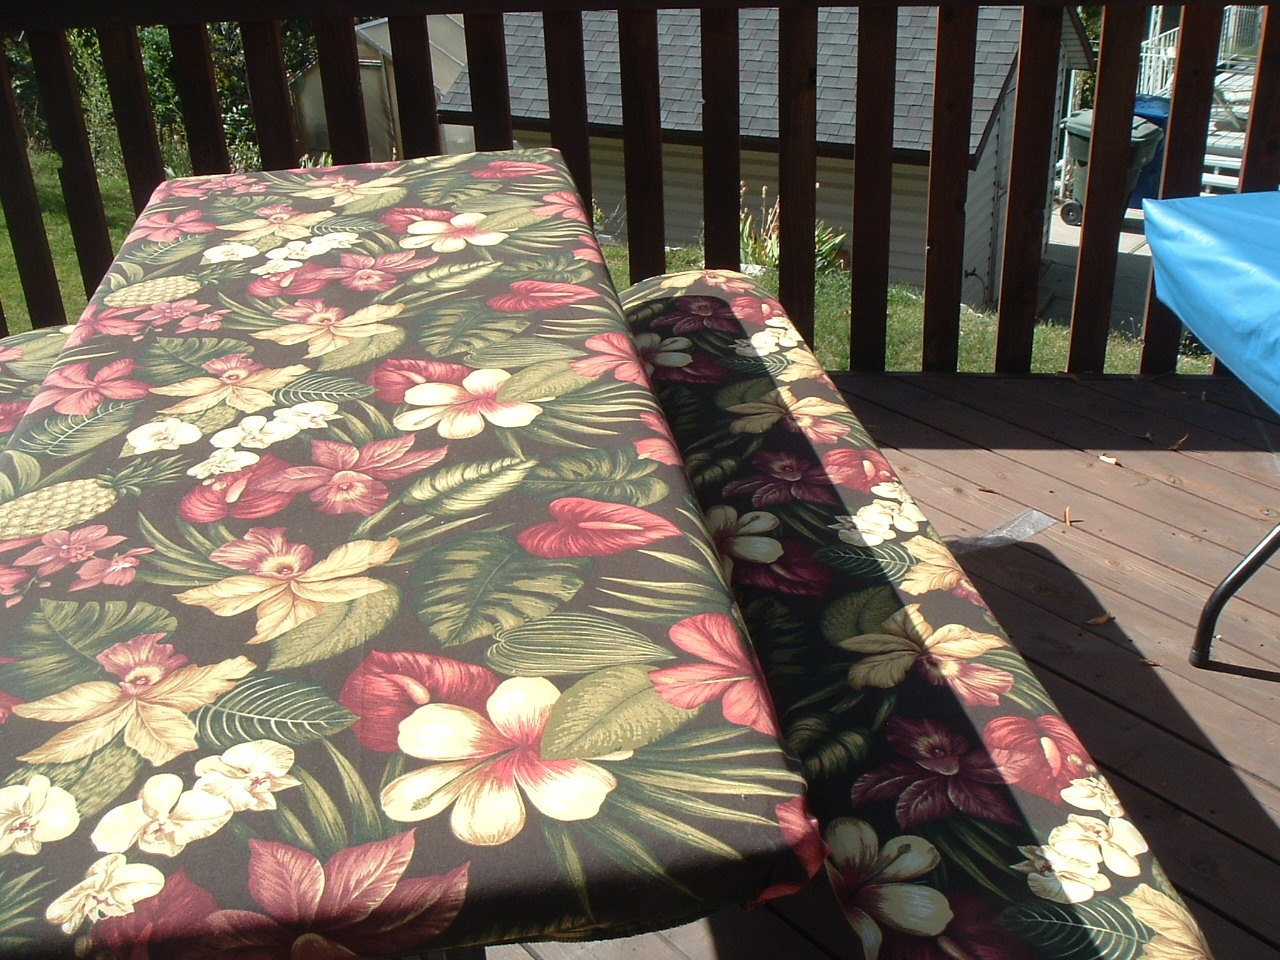 Heavy Duty Outdoor Fabric Picnic Tablecloths For Sale - Outdoor picnic table covers